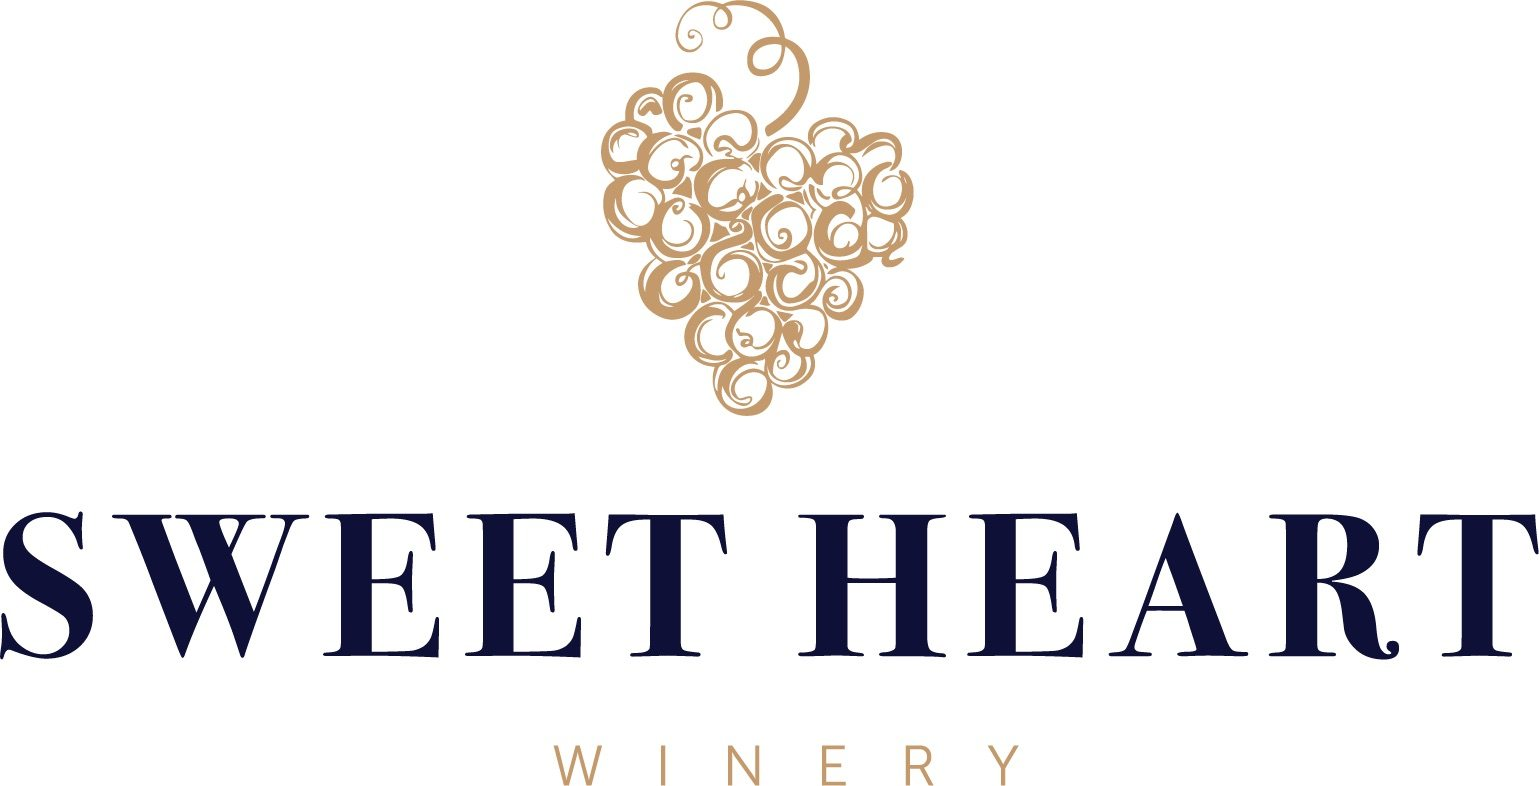 Sweet Heart Winery